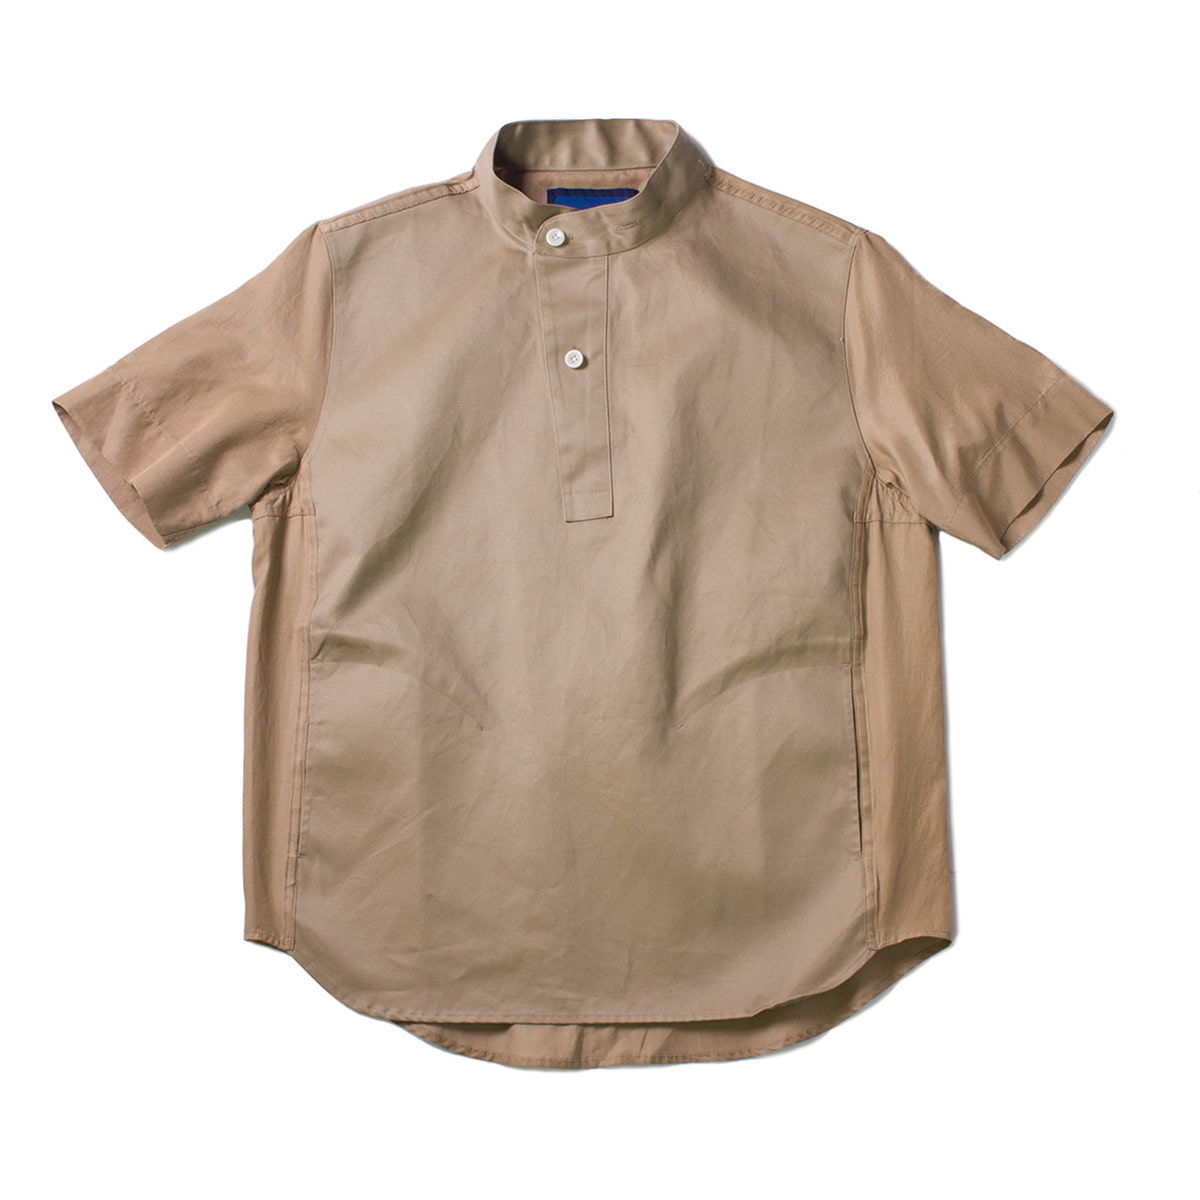 [DOCUMENT] M59 UTILITY SHIRT 'BEIGE'